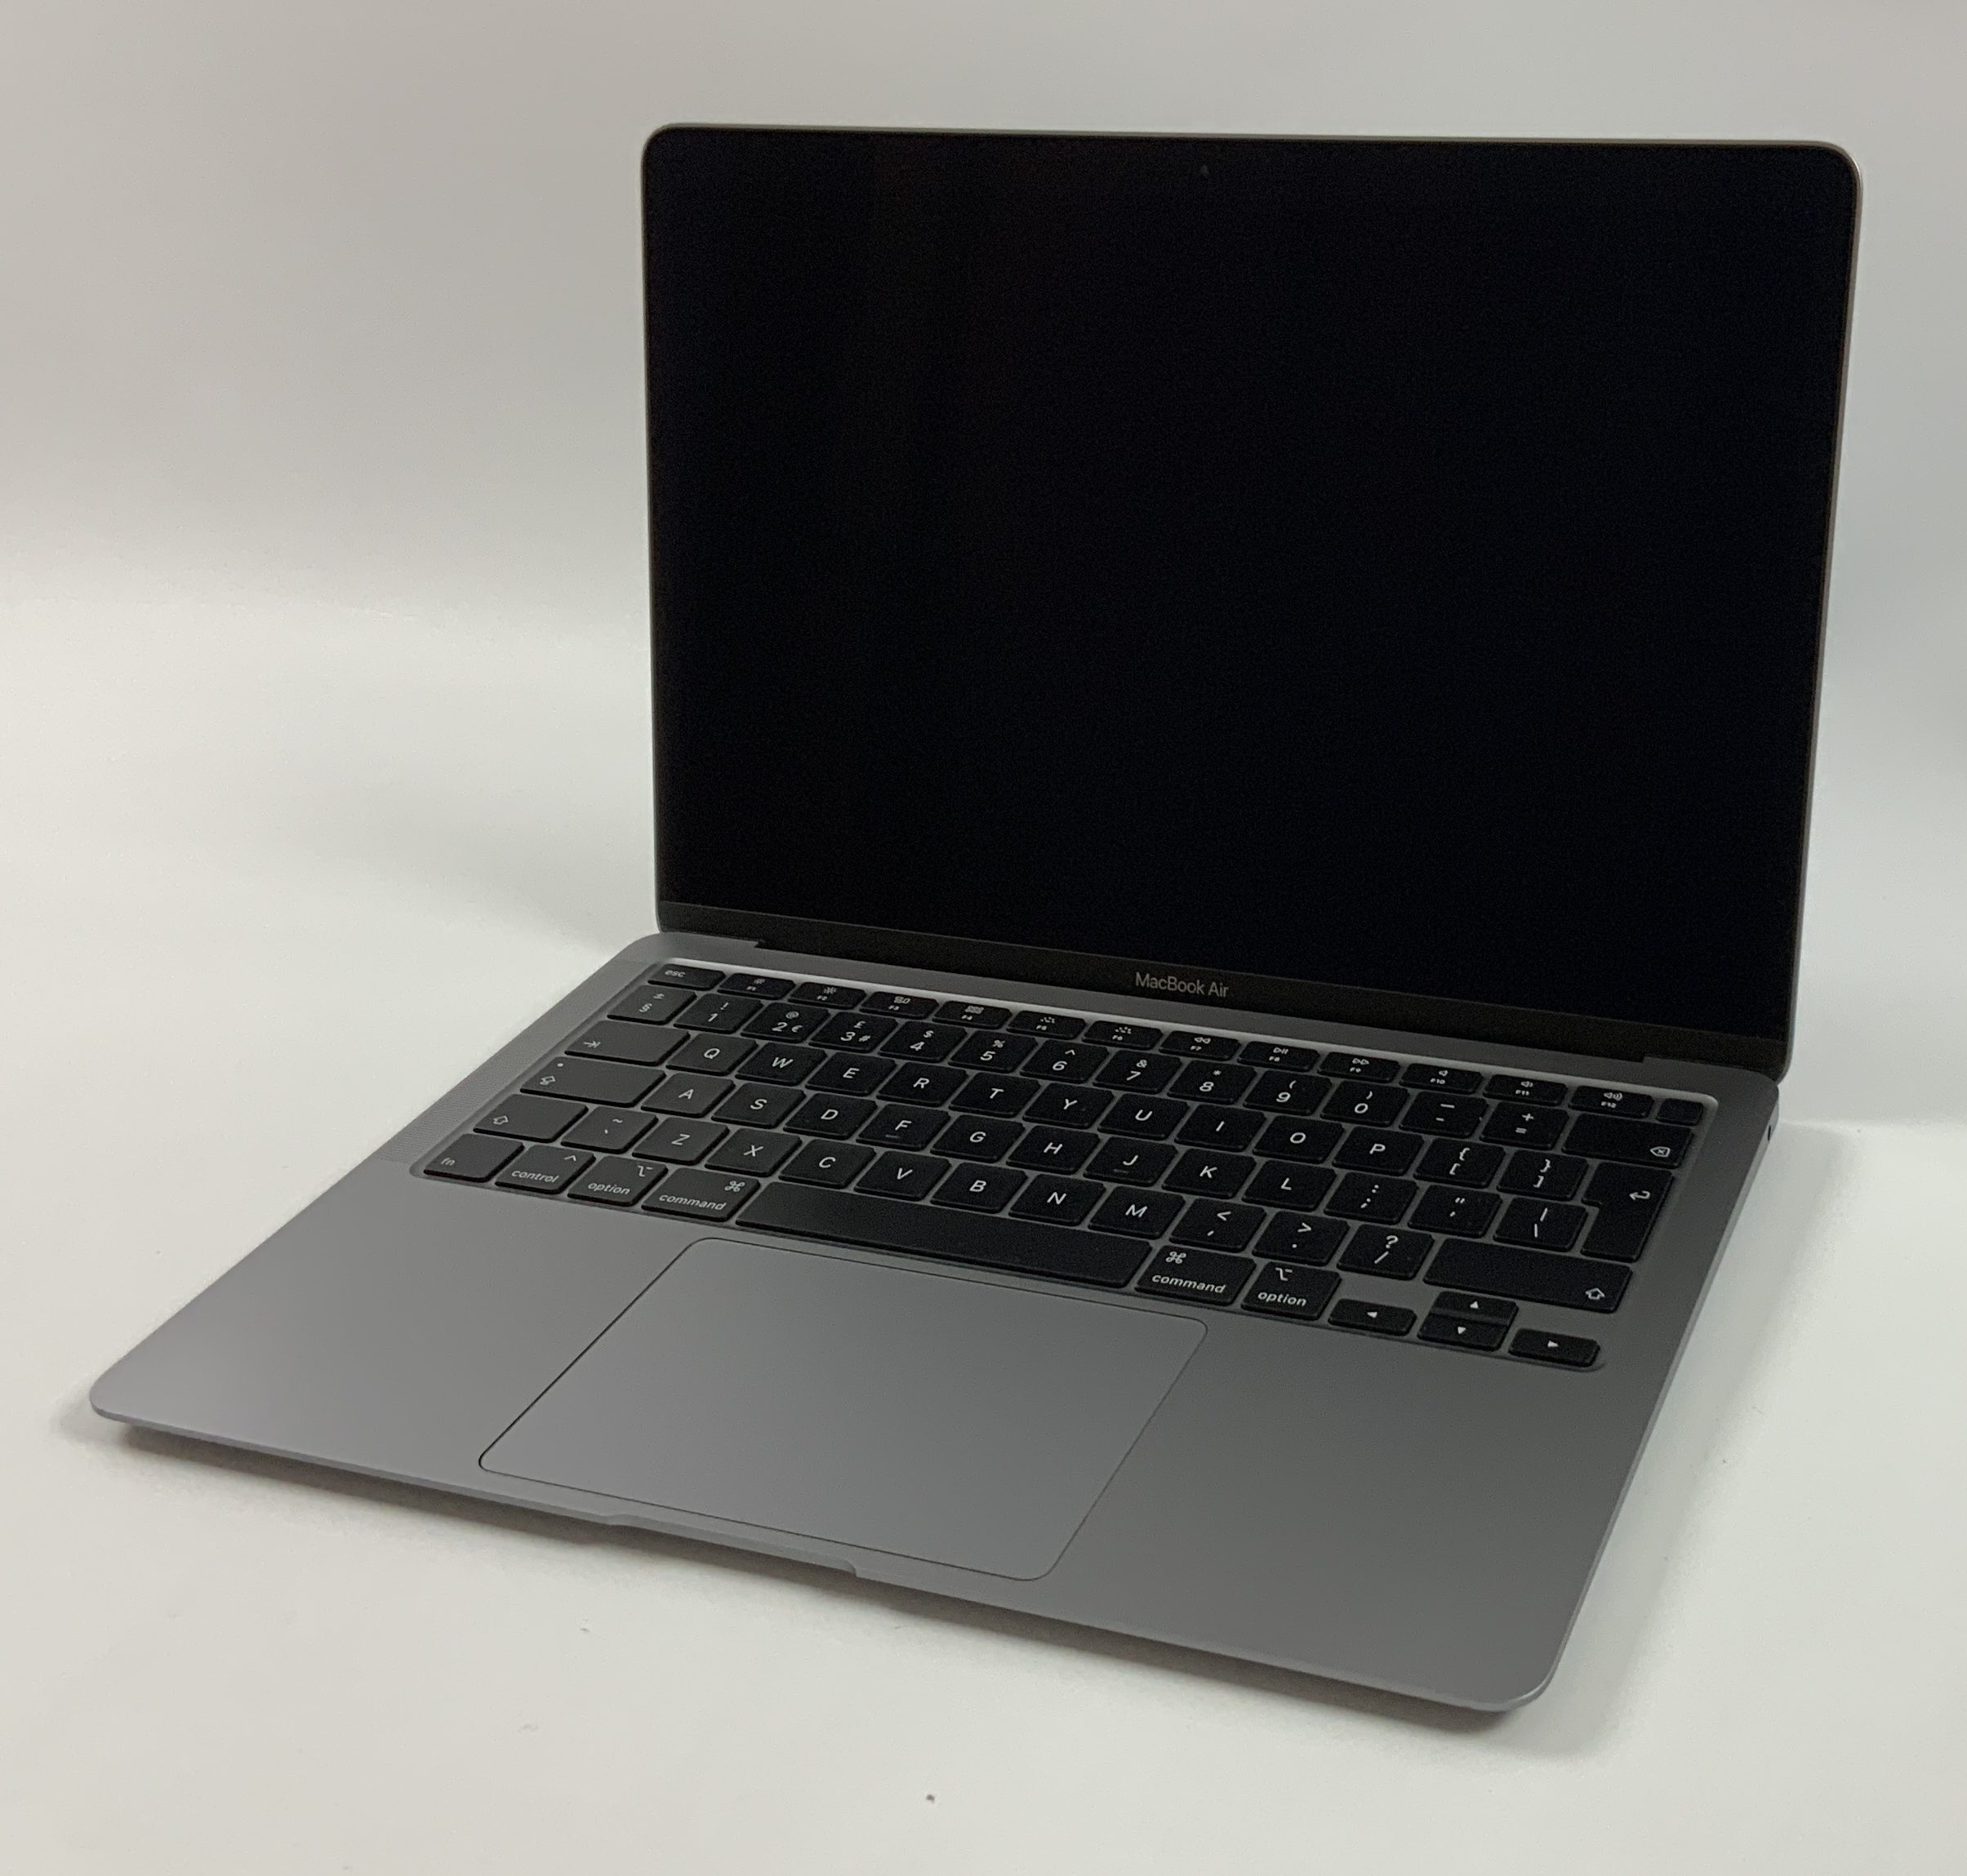 "MacBook Air 13"" Early 2020 (Intel Quad-Core i5 1.1 GHz 16 GB RAM 512 GB SSD), Space Gray, Intel Quad-Core i5 1.1 GHz, 16 GB RAM, 512 GB SSD, bild 1"